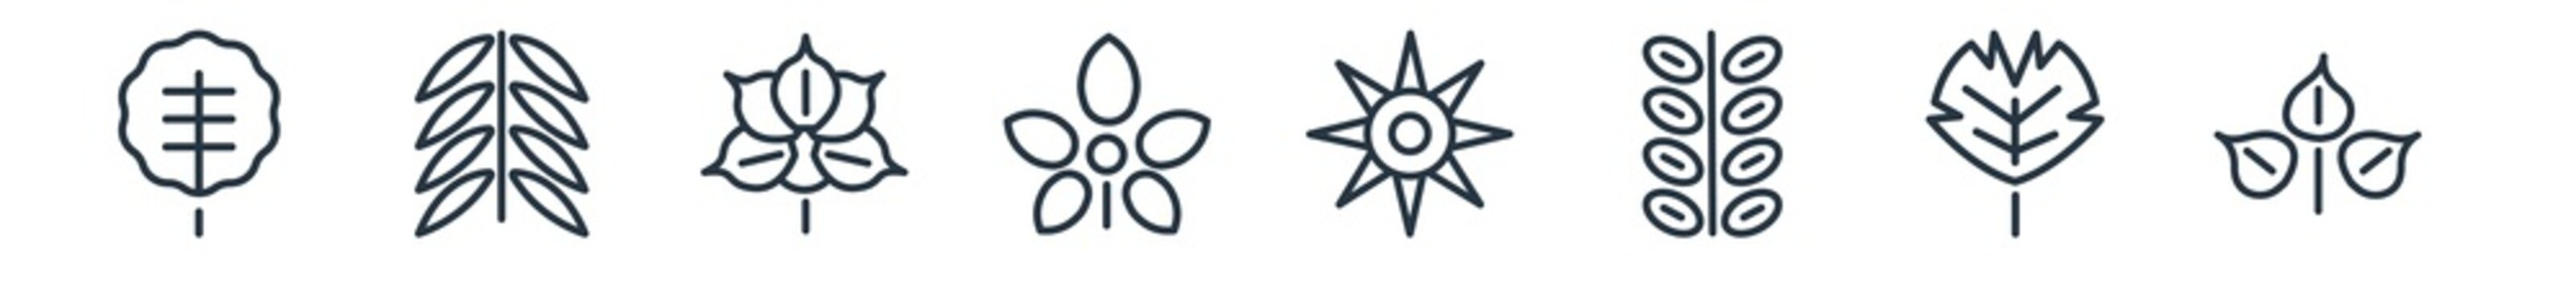 linear set of nature outline icons. line vector icons such as orbicular, black willow, sprig with five leaves, chestnut leaf, sol, acacia vector illustration.